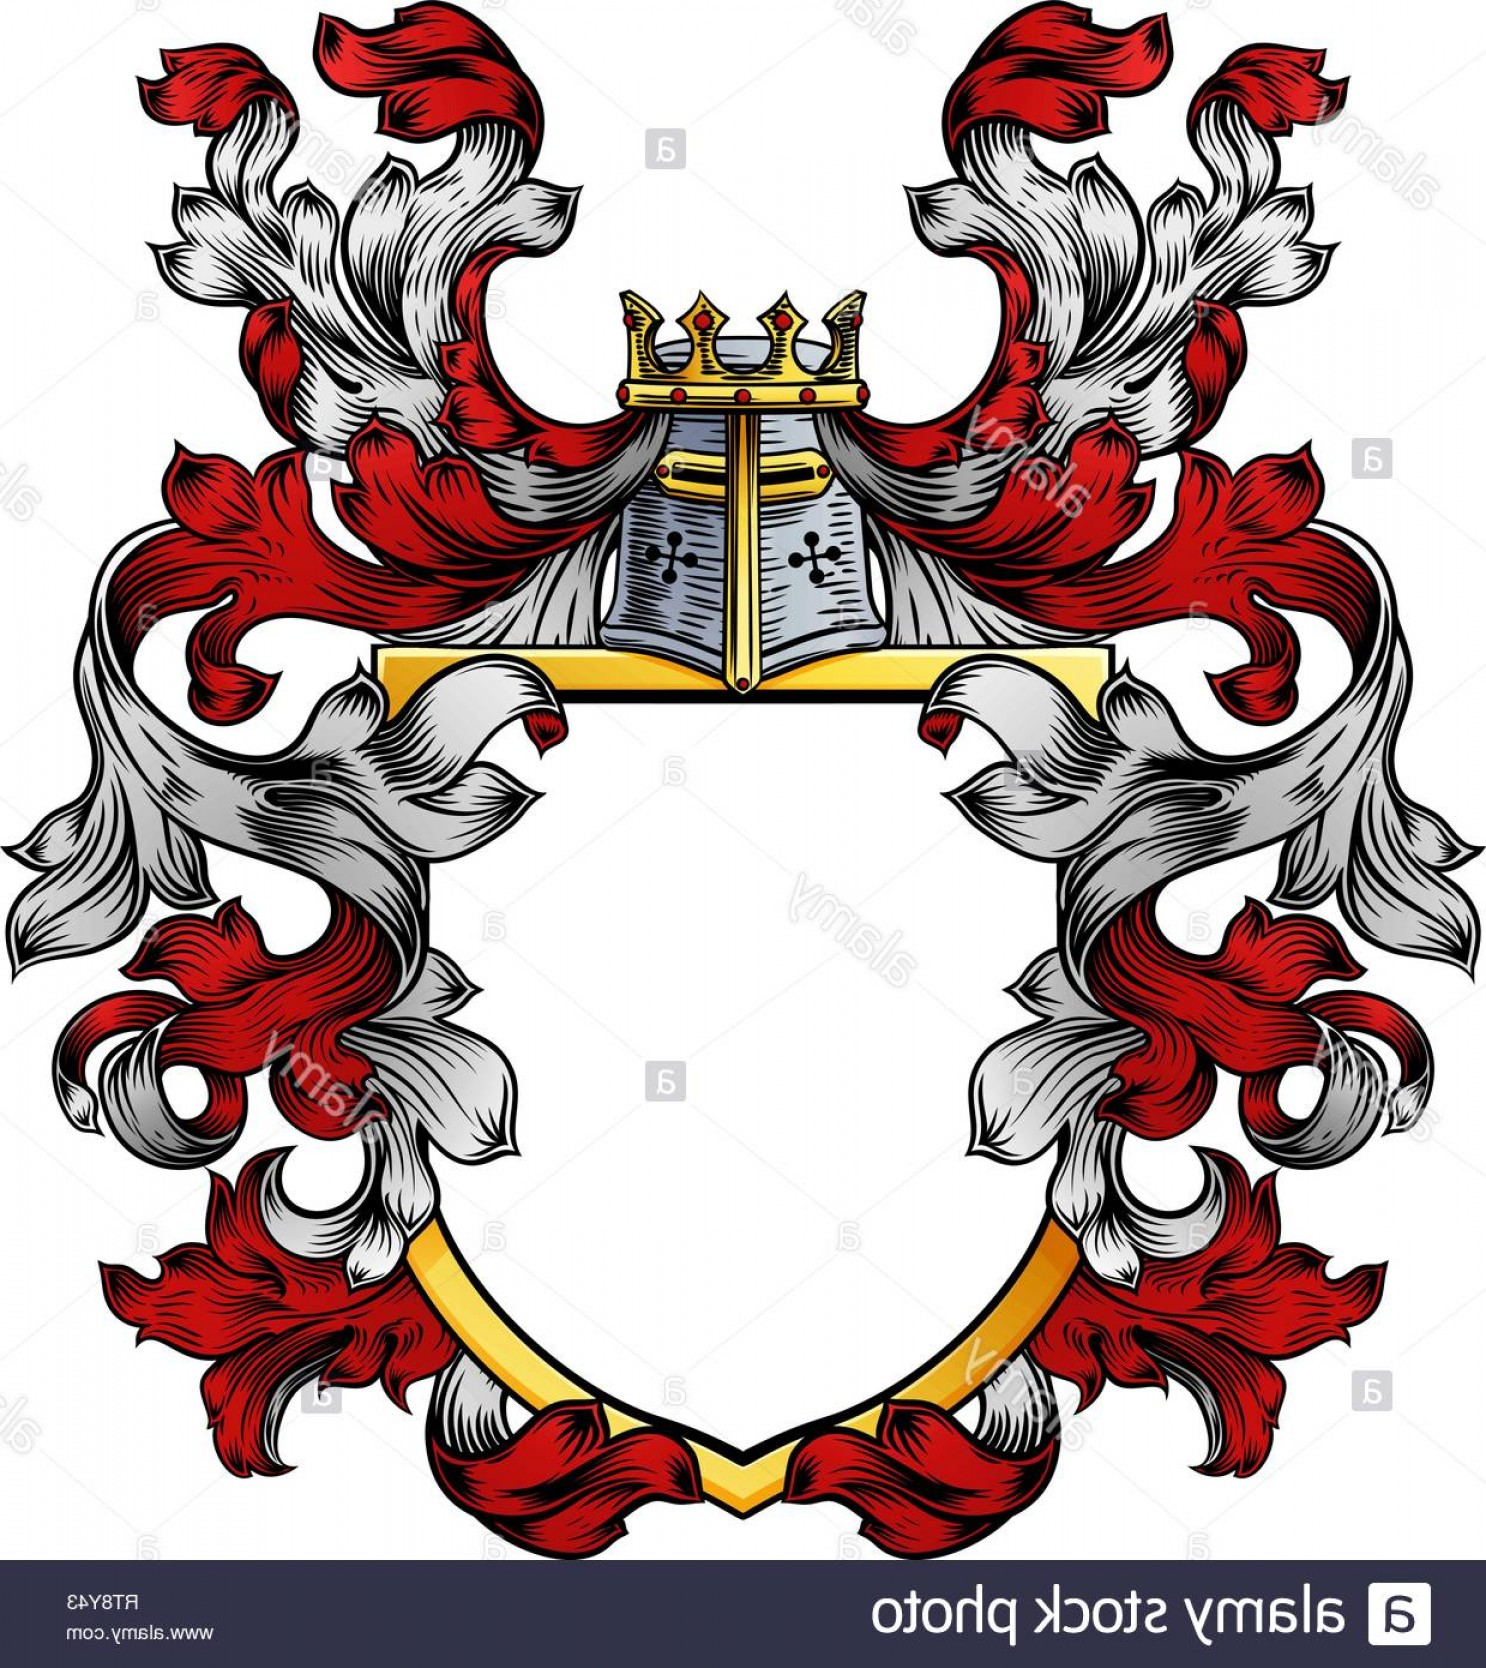 Crest And Coat Of Arms Vector Silhouette: Coat Of Arms Crest Knight Family Heraldic Shield Image